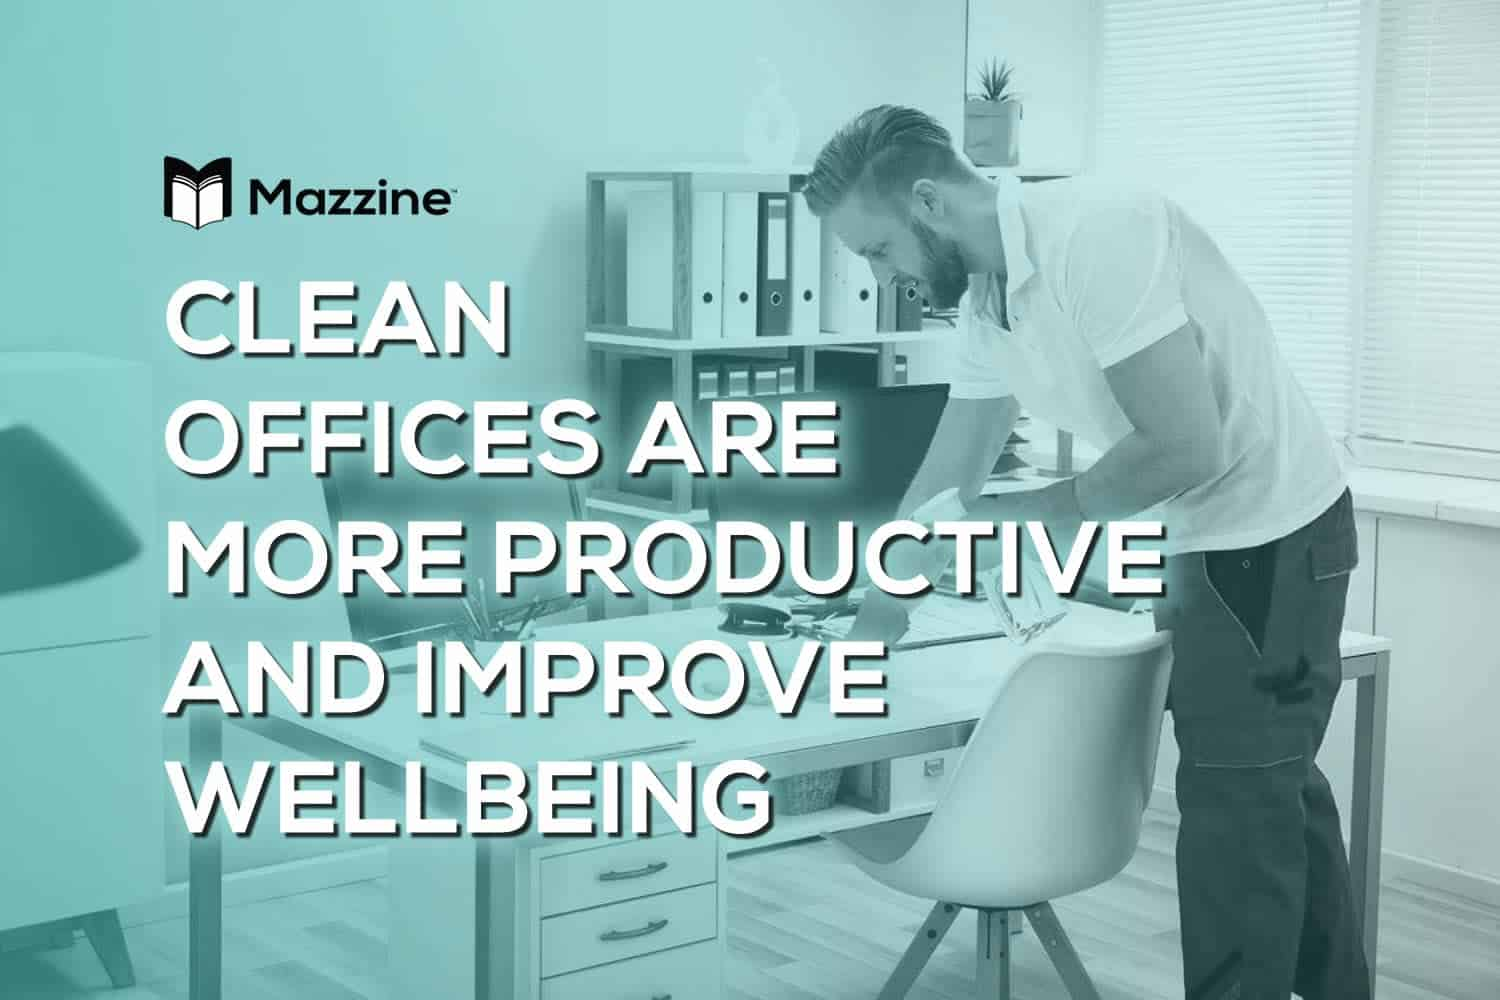 Clean Offices Are More Productive and Improve Wellbeing